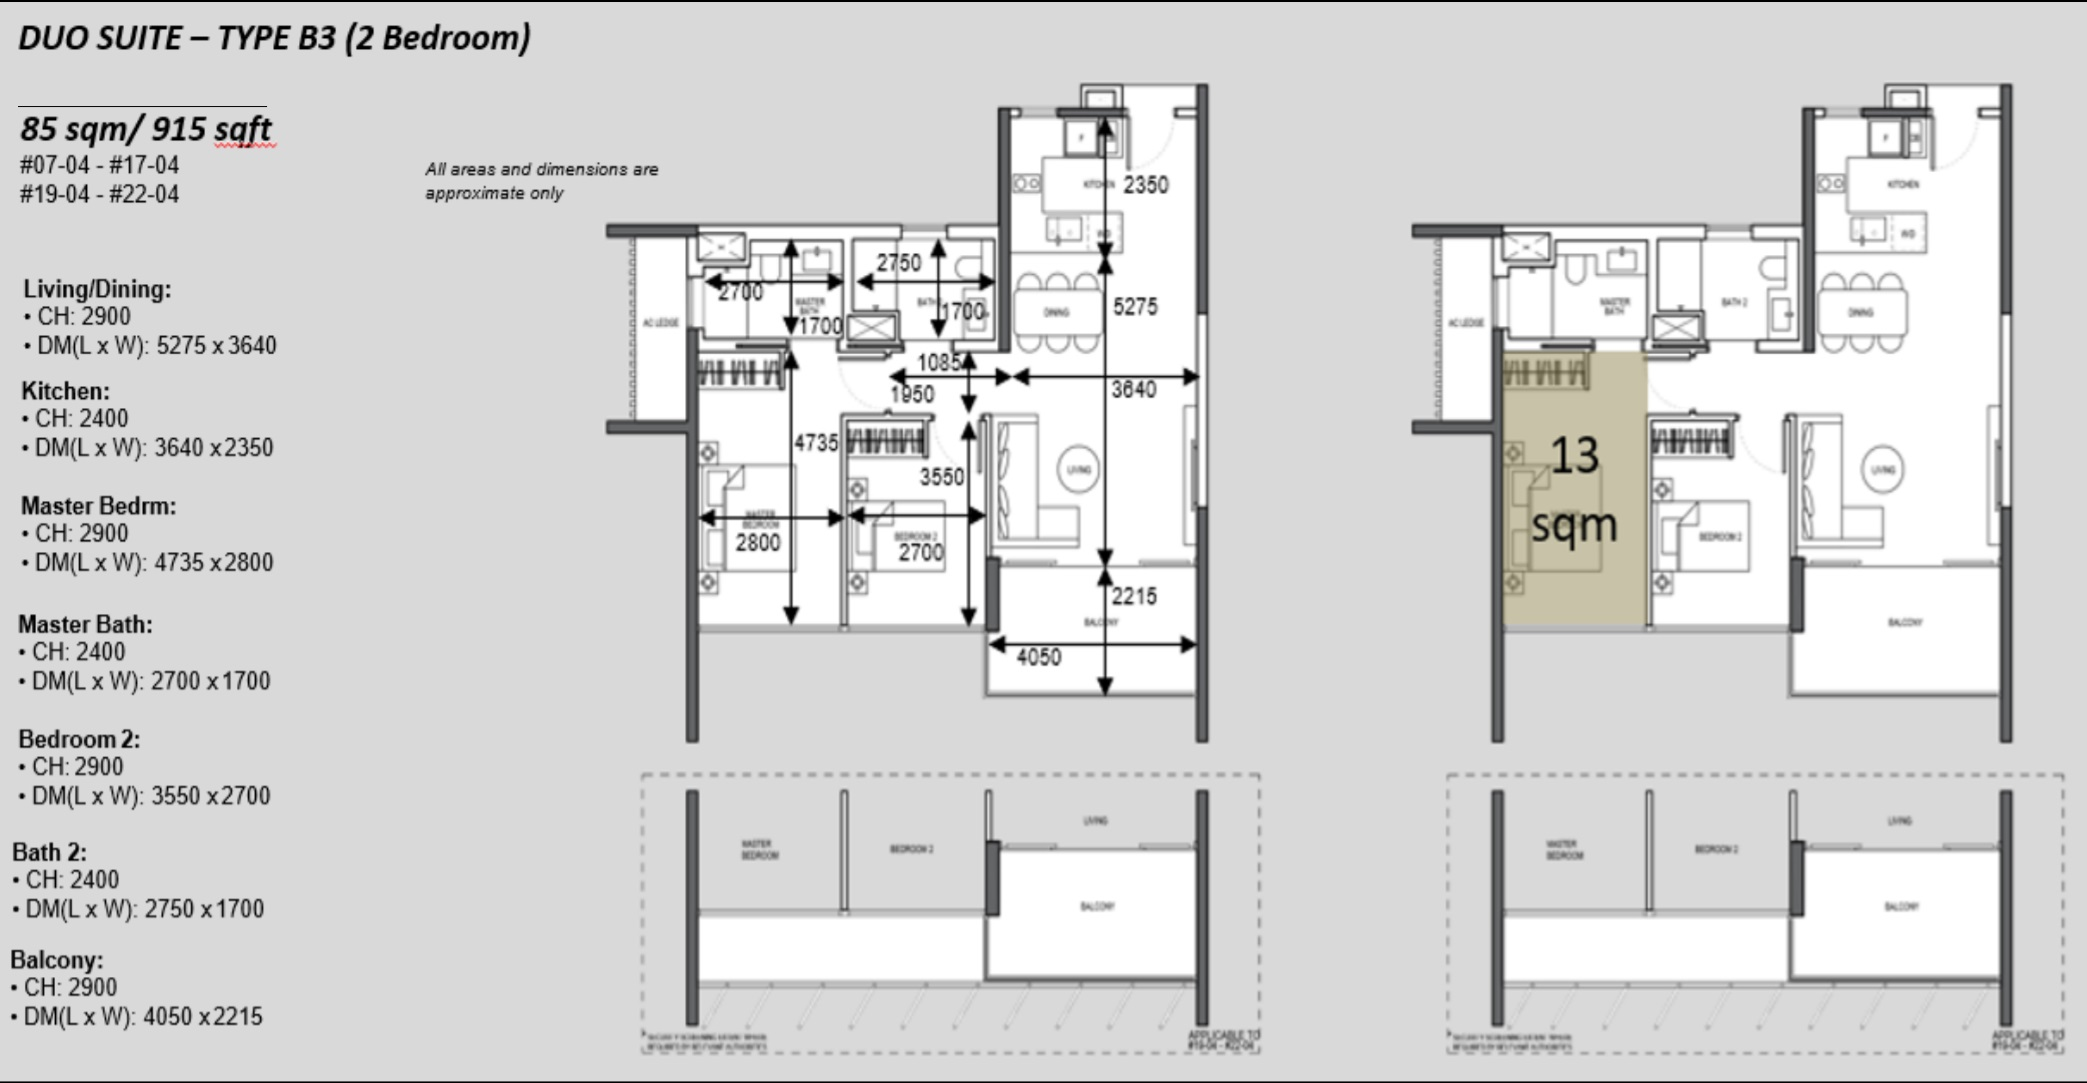 The Atelier condo floorplan 2 bedroom Type B3